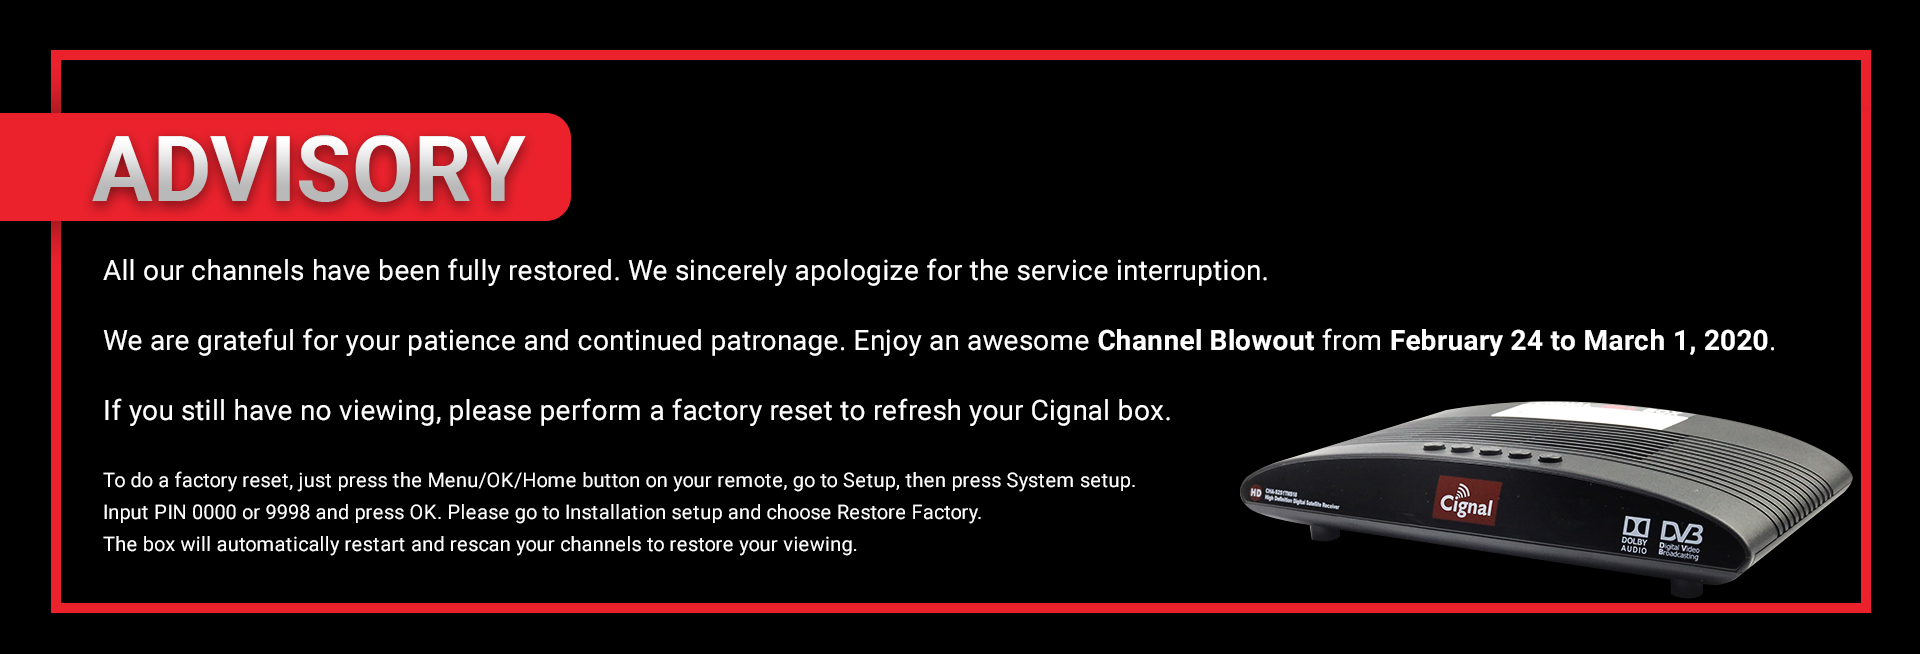 Cignal TV Advisory February 2020